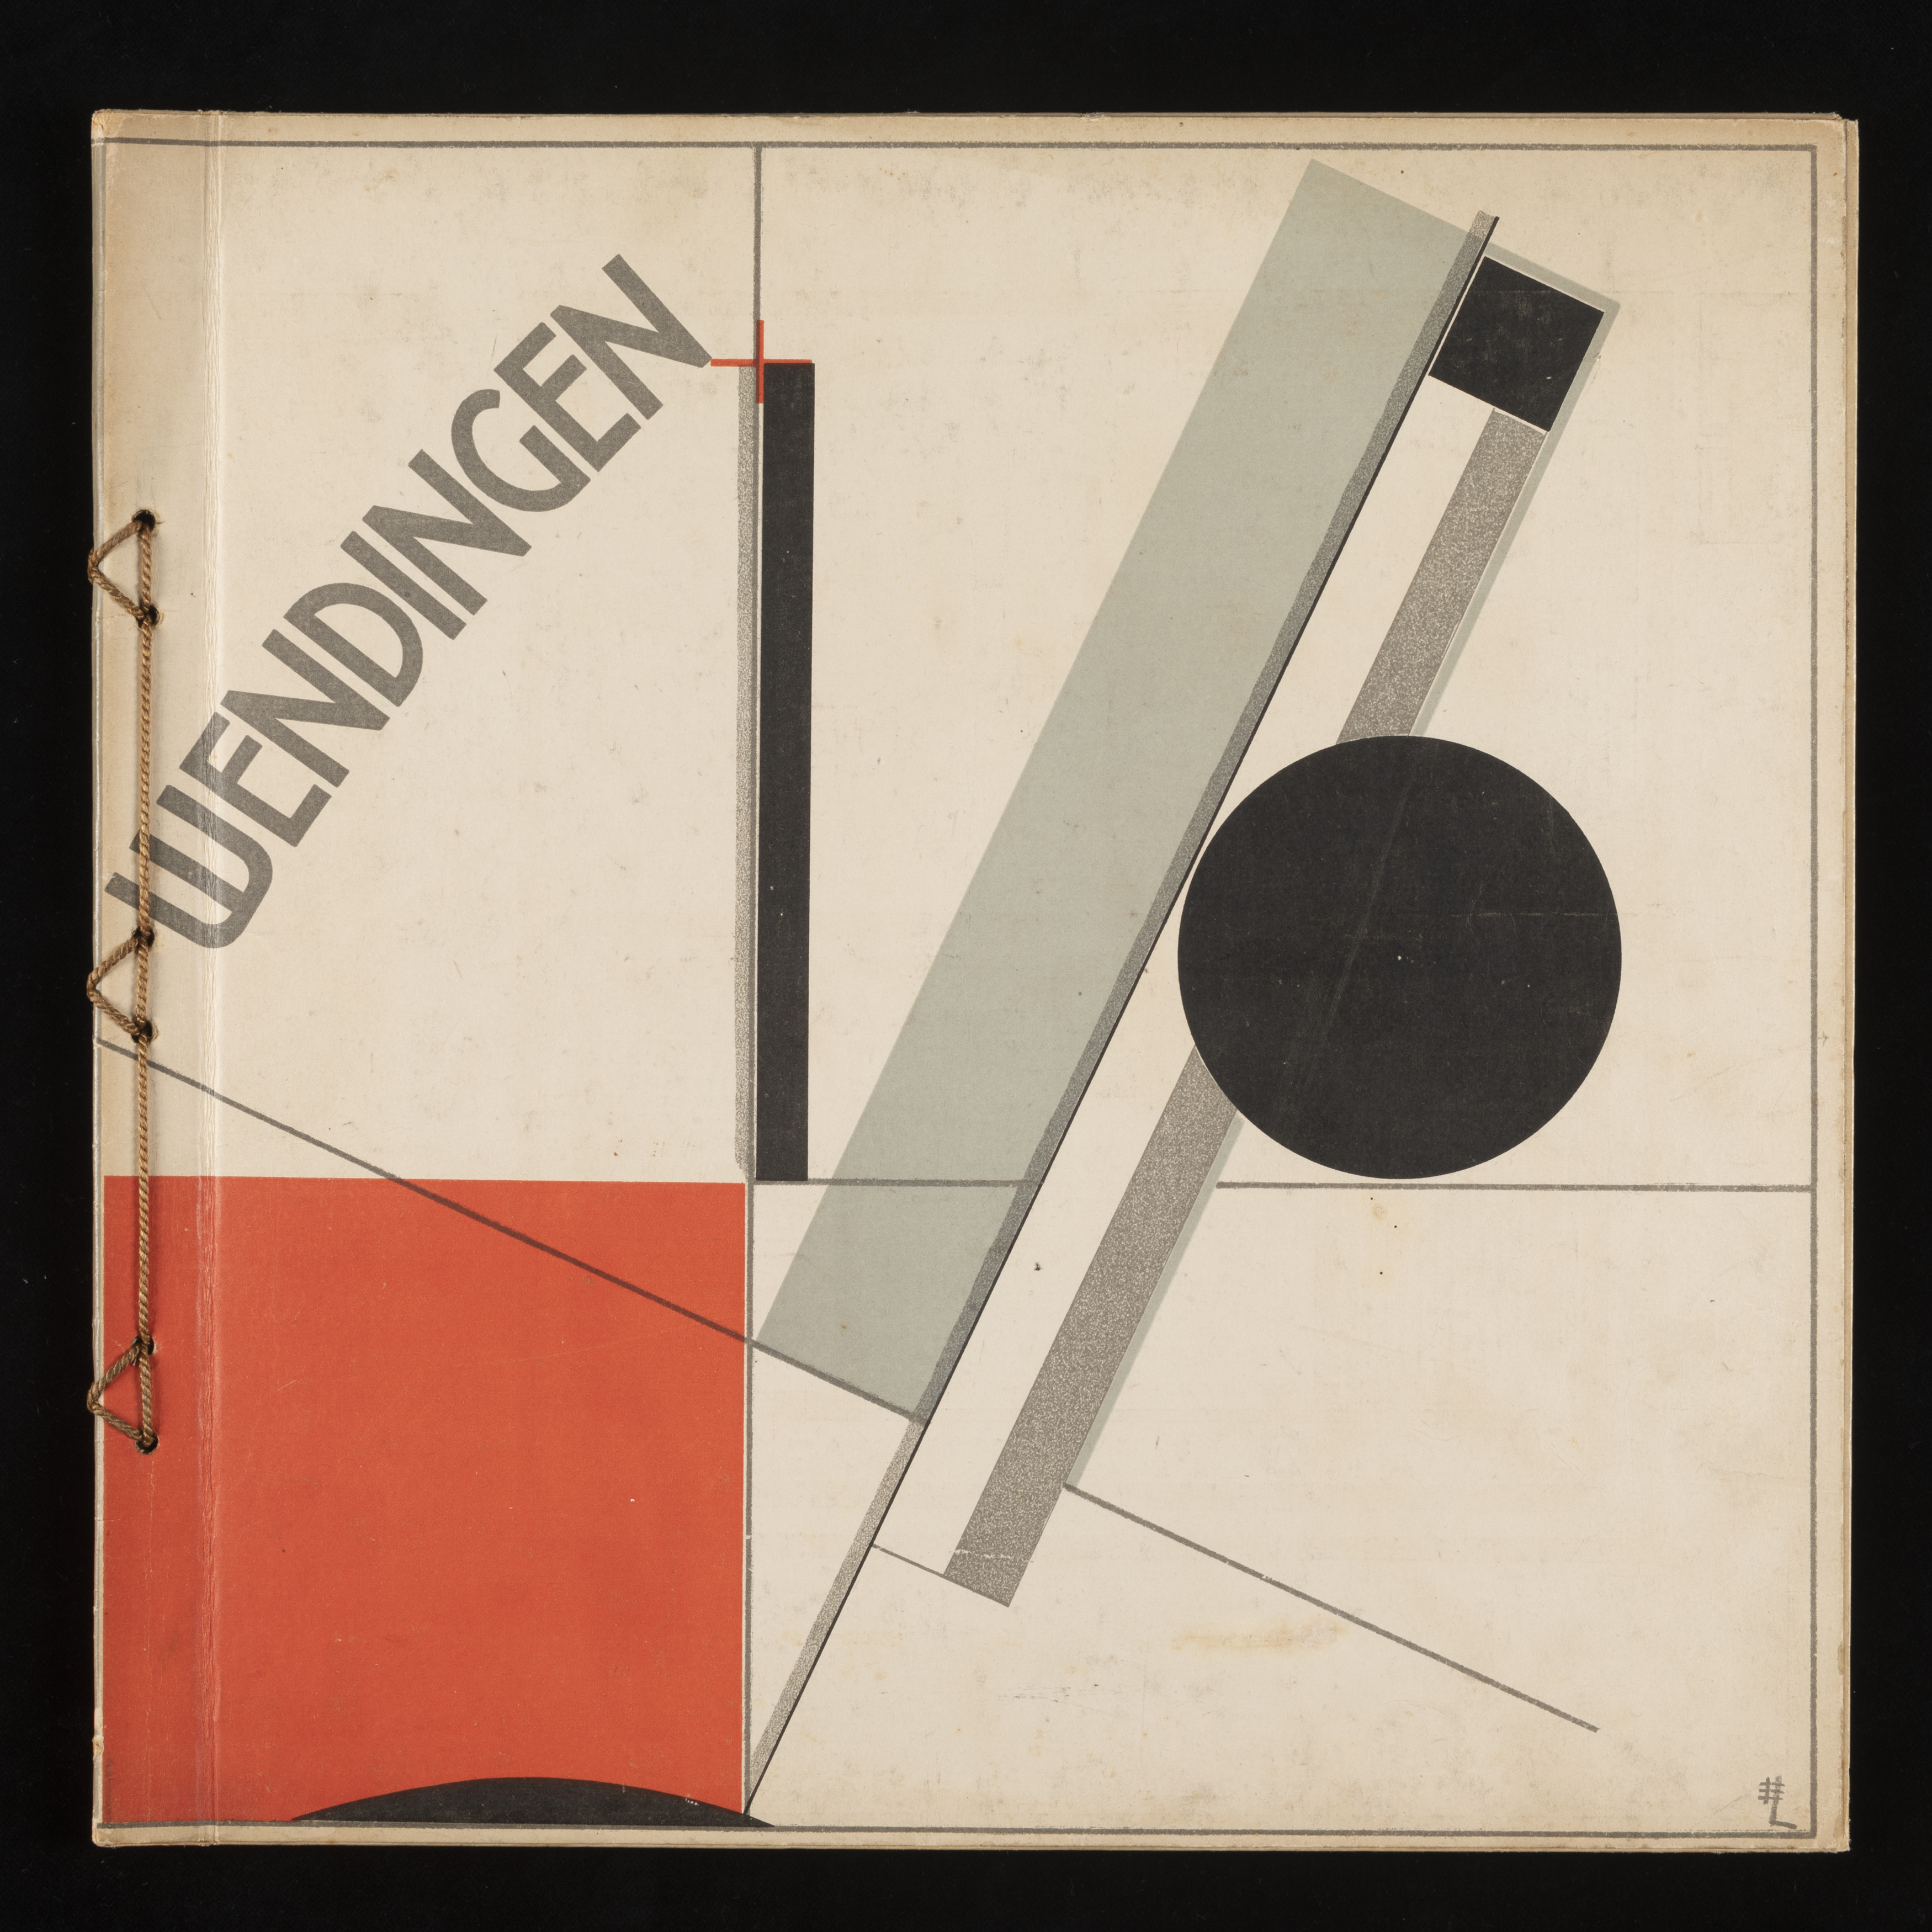 Square-format magazine cover in white printed with geometrical shapes and lines in black, red and grey. Top left section features the word WENDINGEN in grey positioned diagonally.